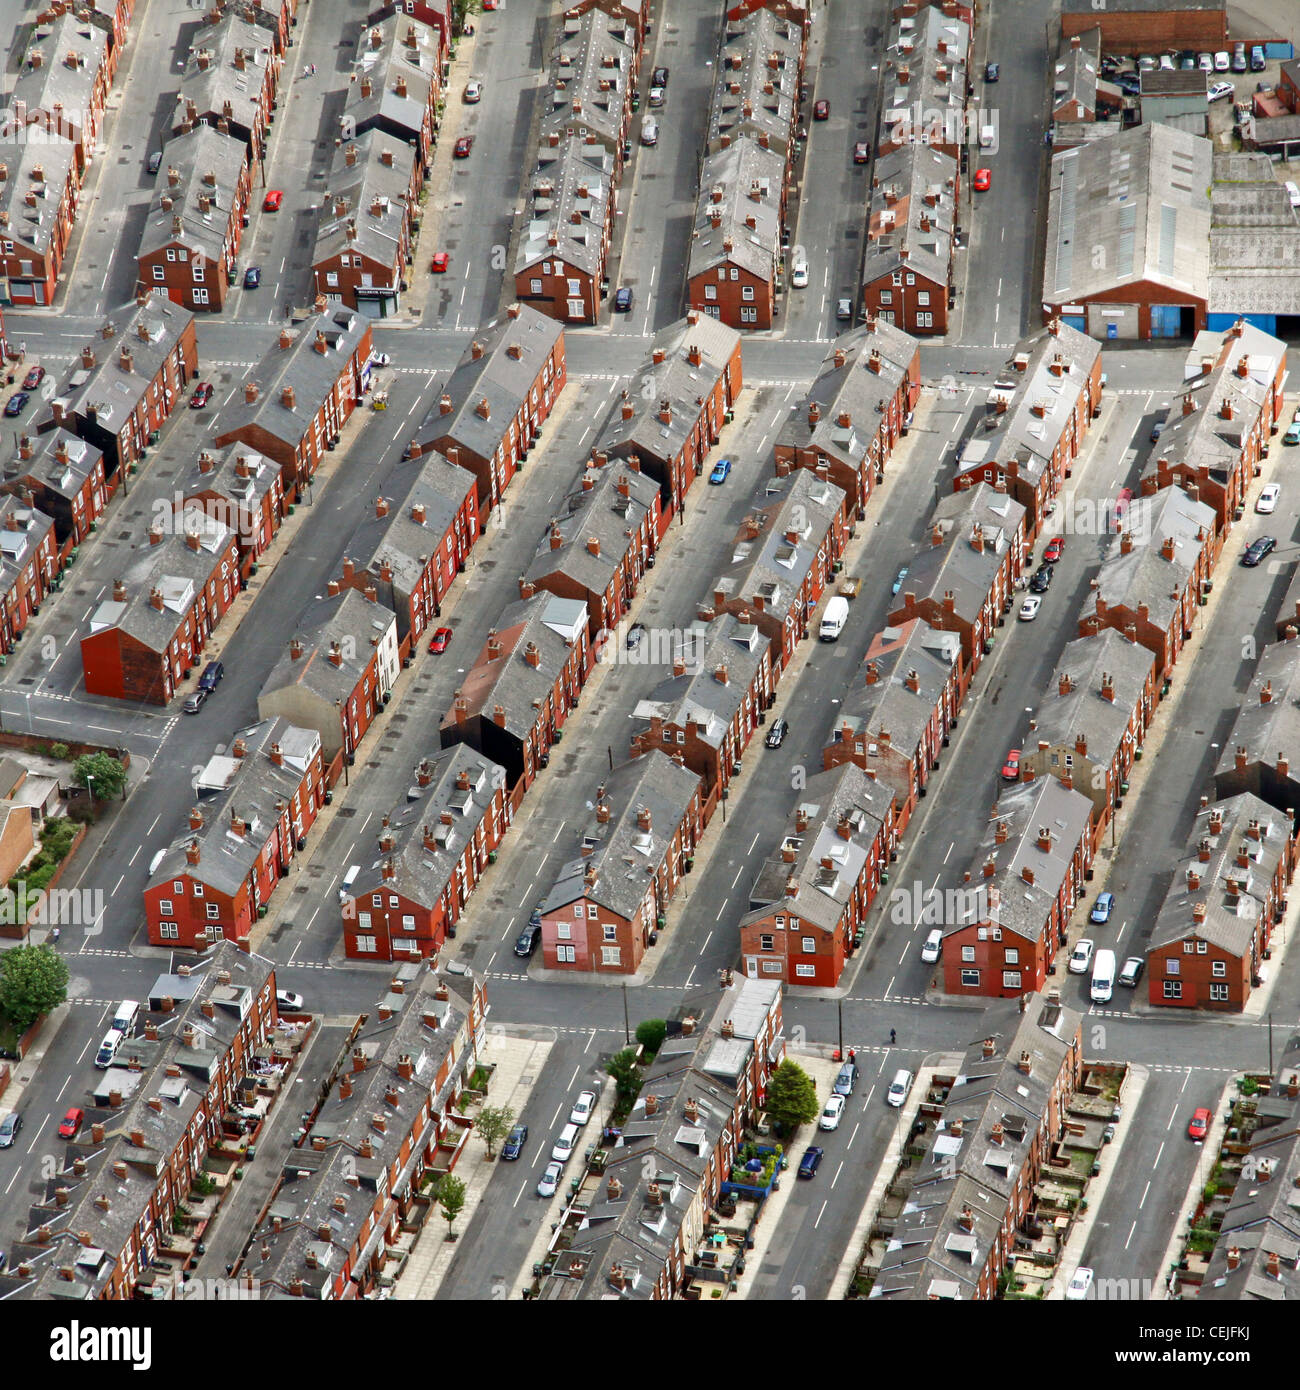 Aerial image of Back-to-back housing - Stock Image